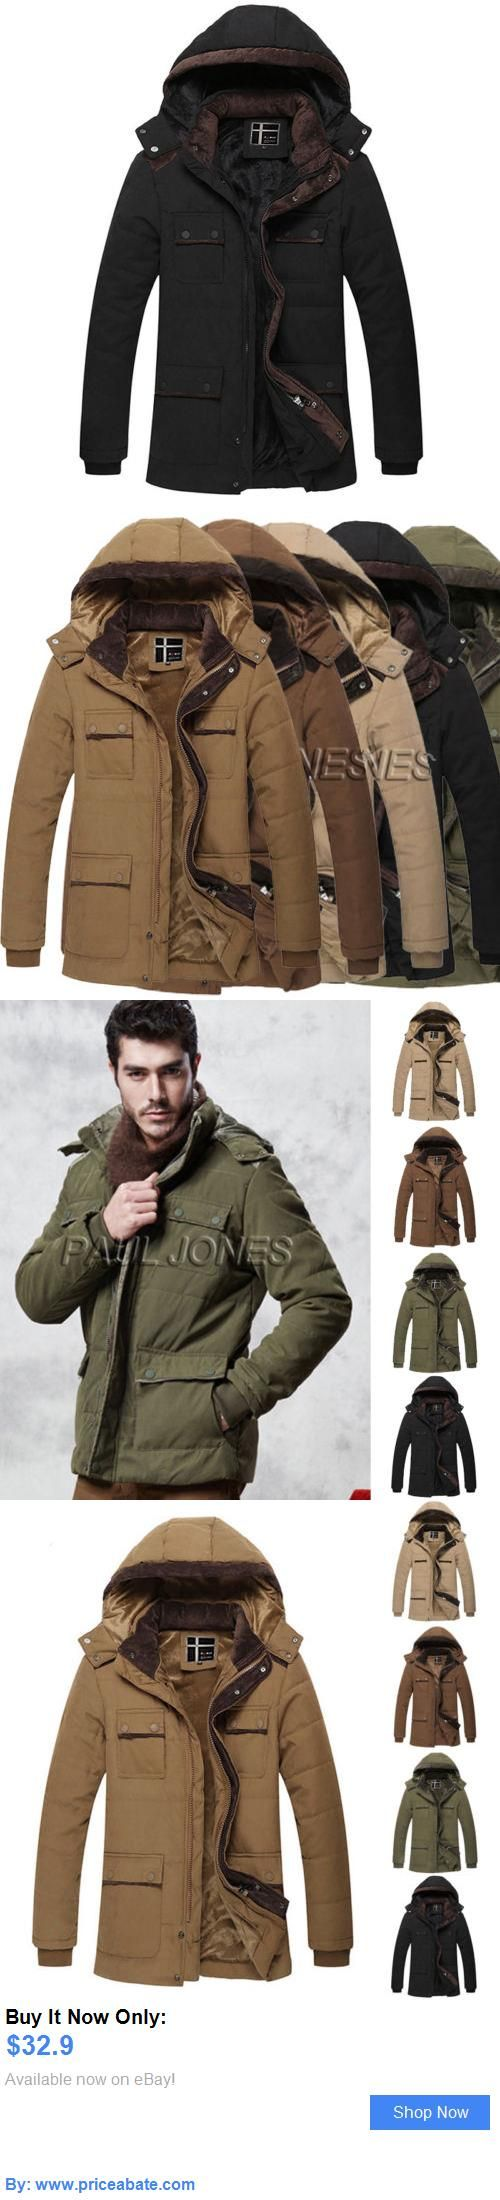 Men Coats And Jackets: Men Warm Collar Hooded Parka Winter Thick Padded Coat Outwear Cotton Jacket Coat BUY IT NOW ONLY: $32.9 #priceabateMenCoatsAndJackets OR #priceabate